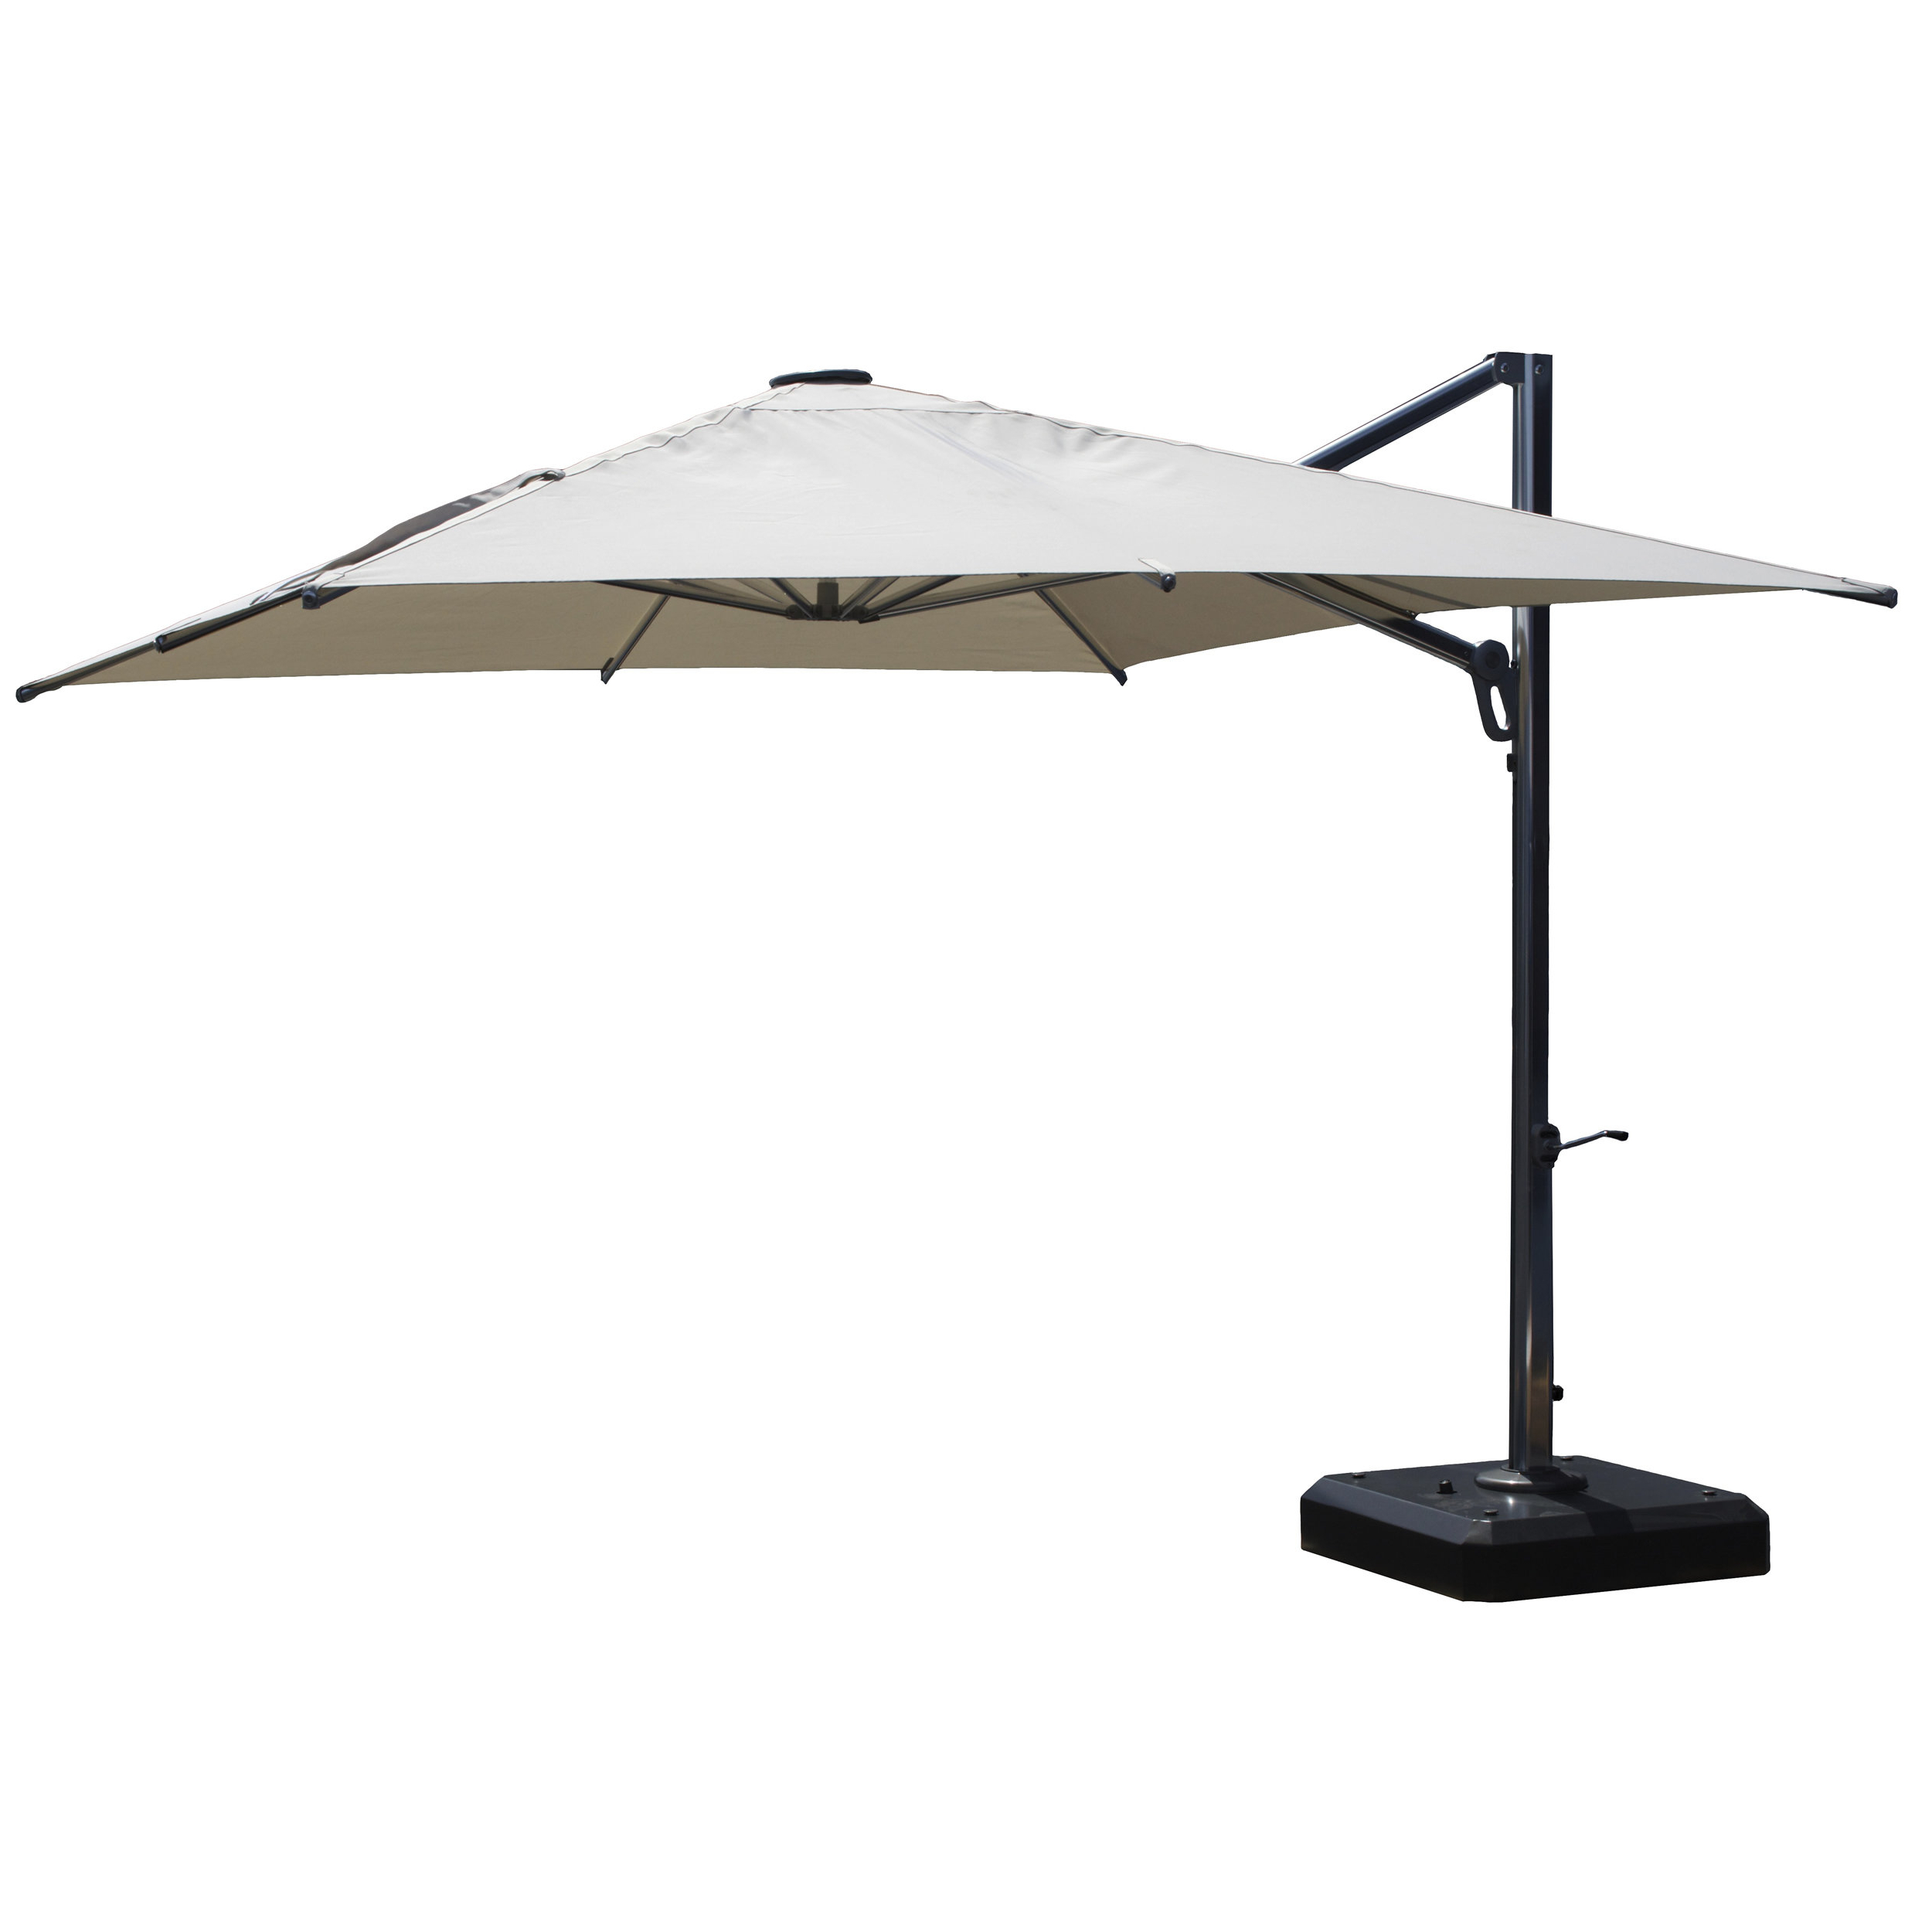 10' Square Cantilever Umbrella Intended For Most Up To Date Cantilever Umbrellas (Gallery 8 of 20)